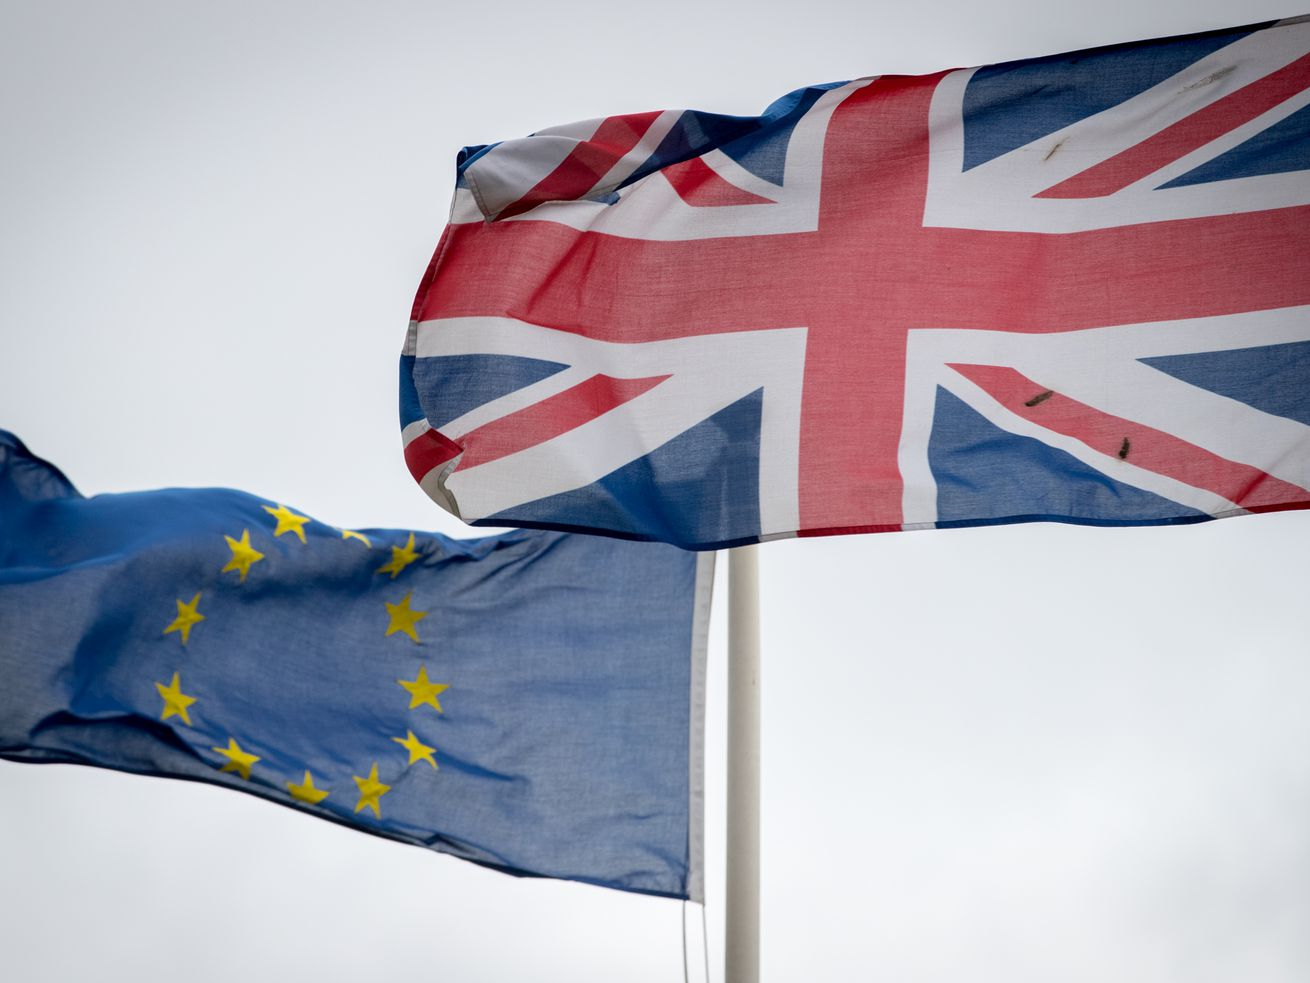 A European Union flag flying beside a United Kingdom flag.